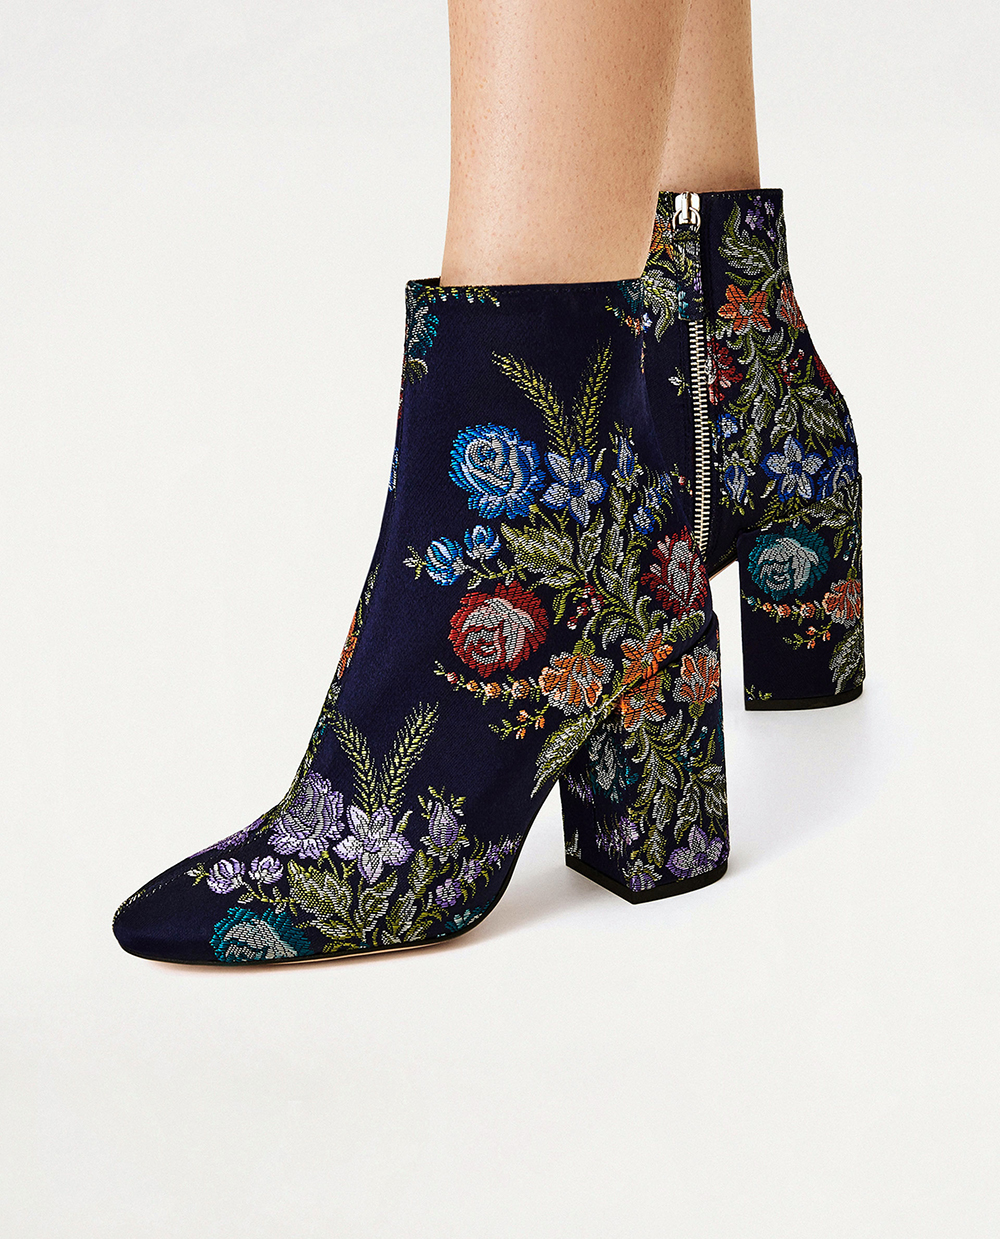 Zara Embroidered Detail Ankle Boots - Statement shoes